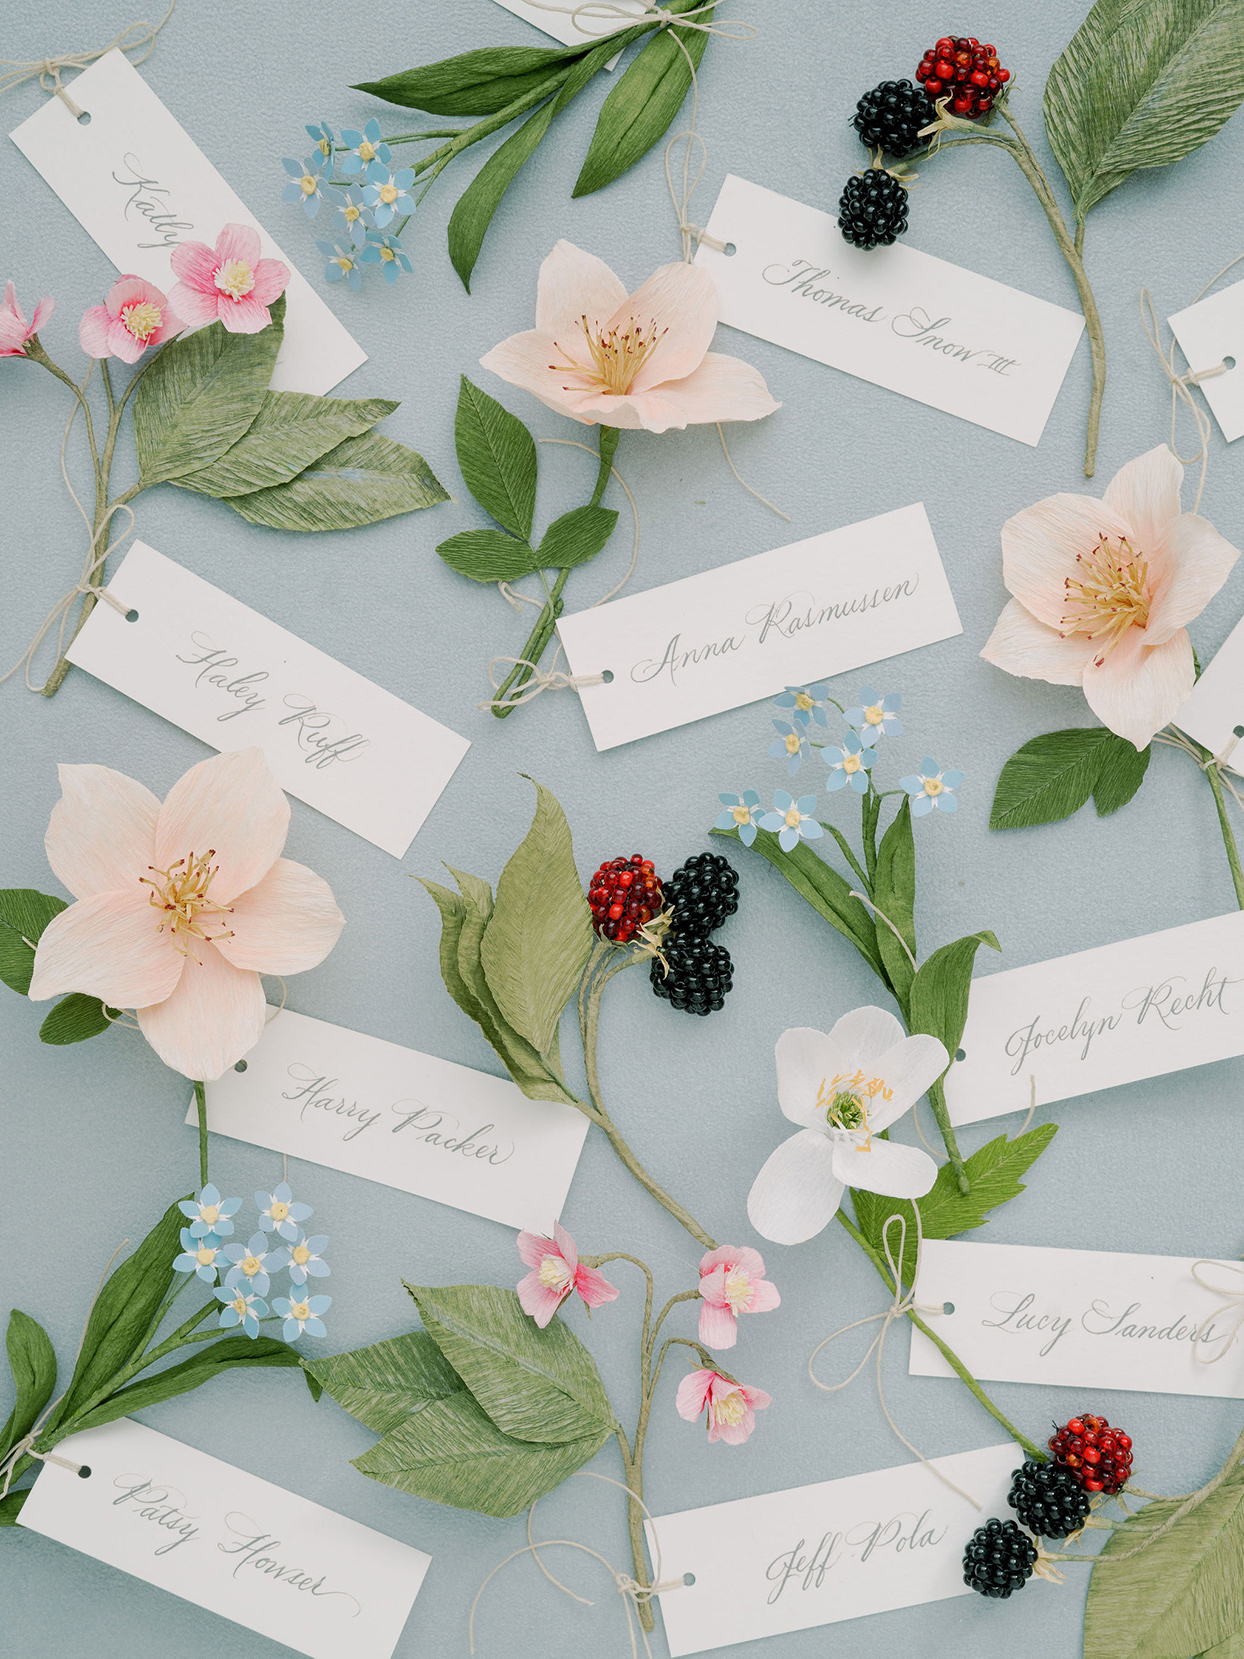 wedding place cards with wildflowers and berries